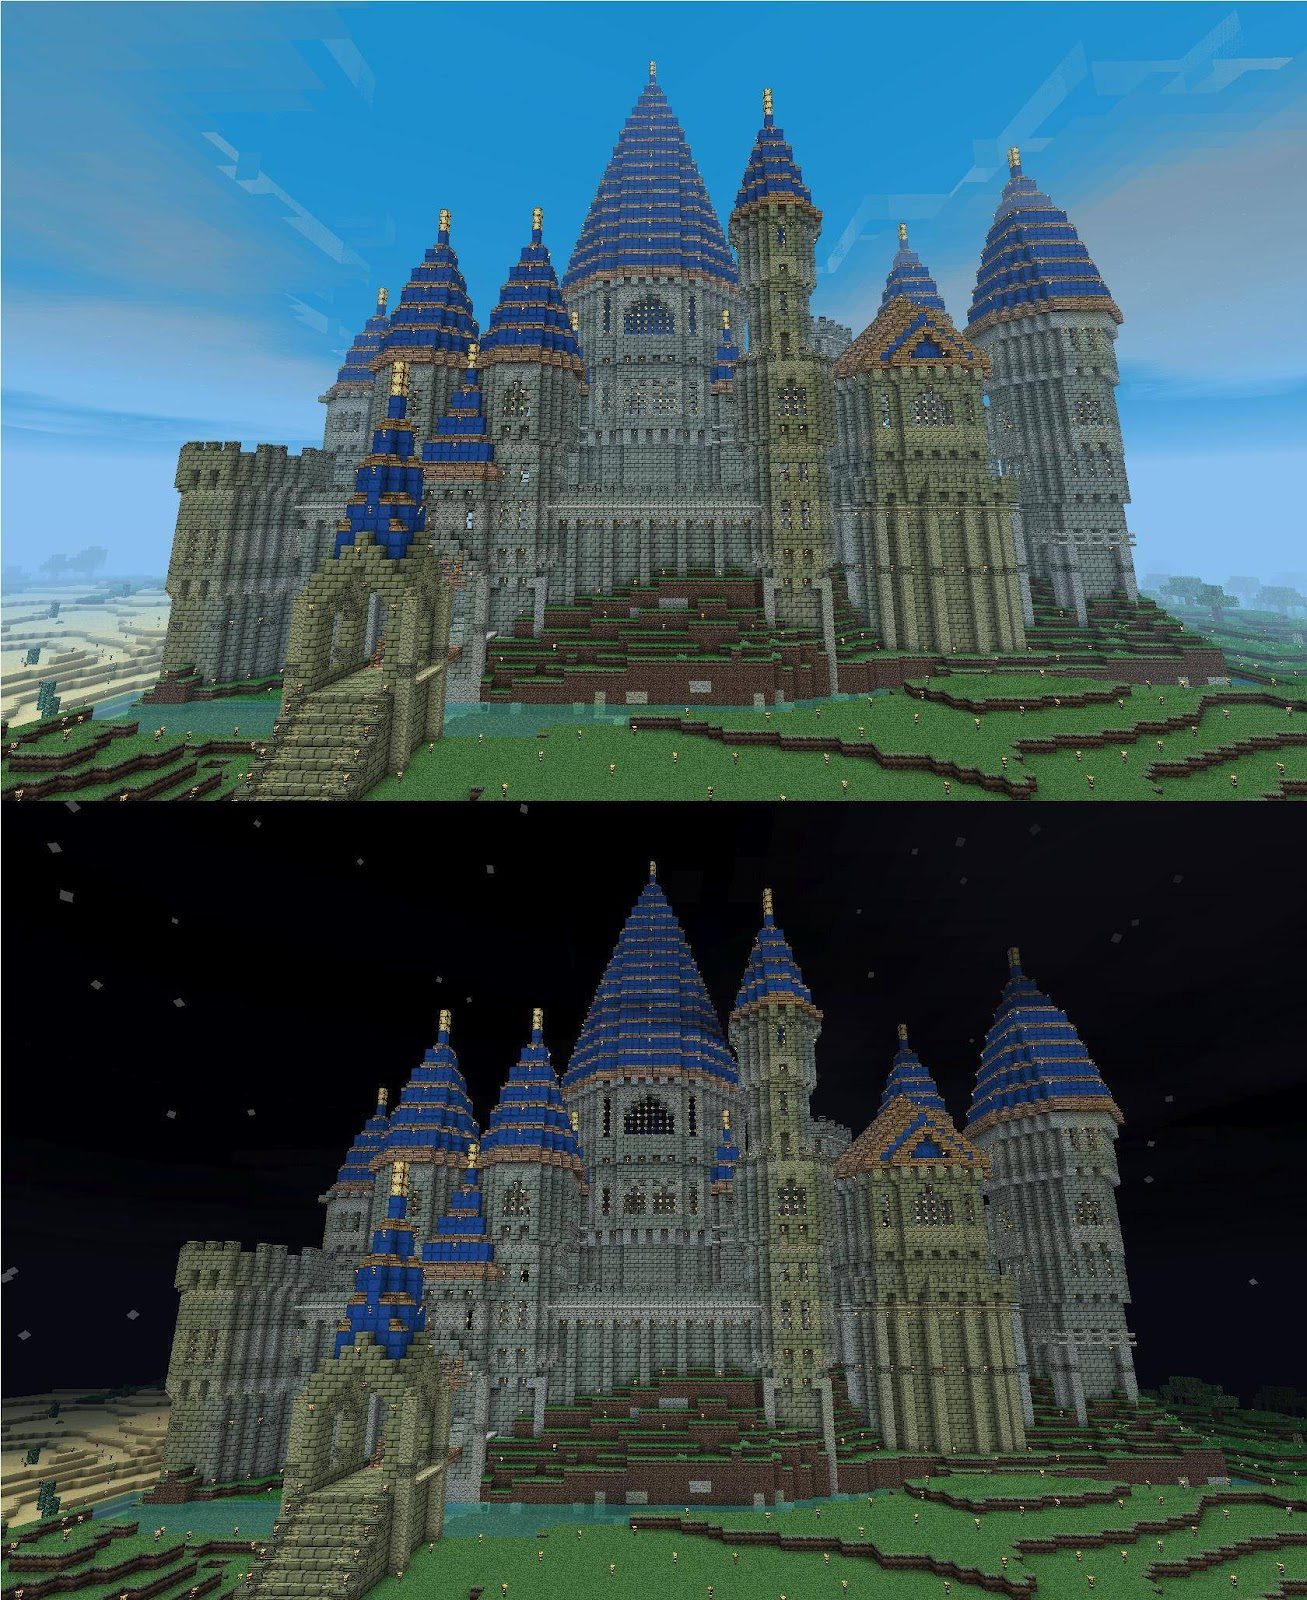 The Minecraft Castle: Enormous Colourful Minecraft Castle